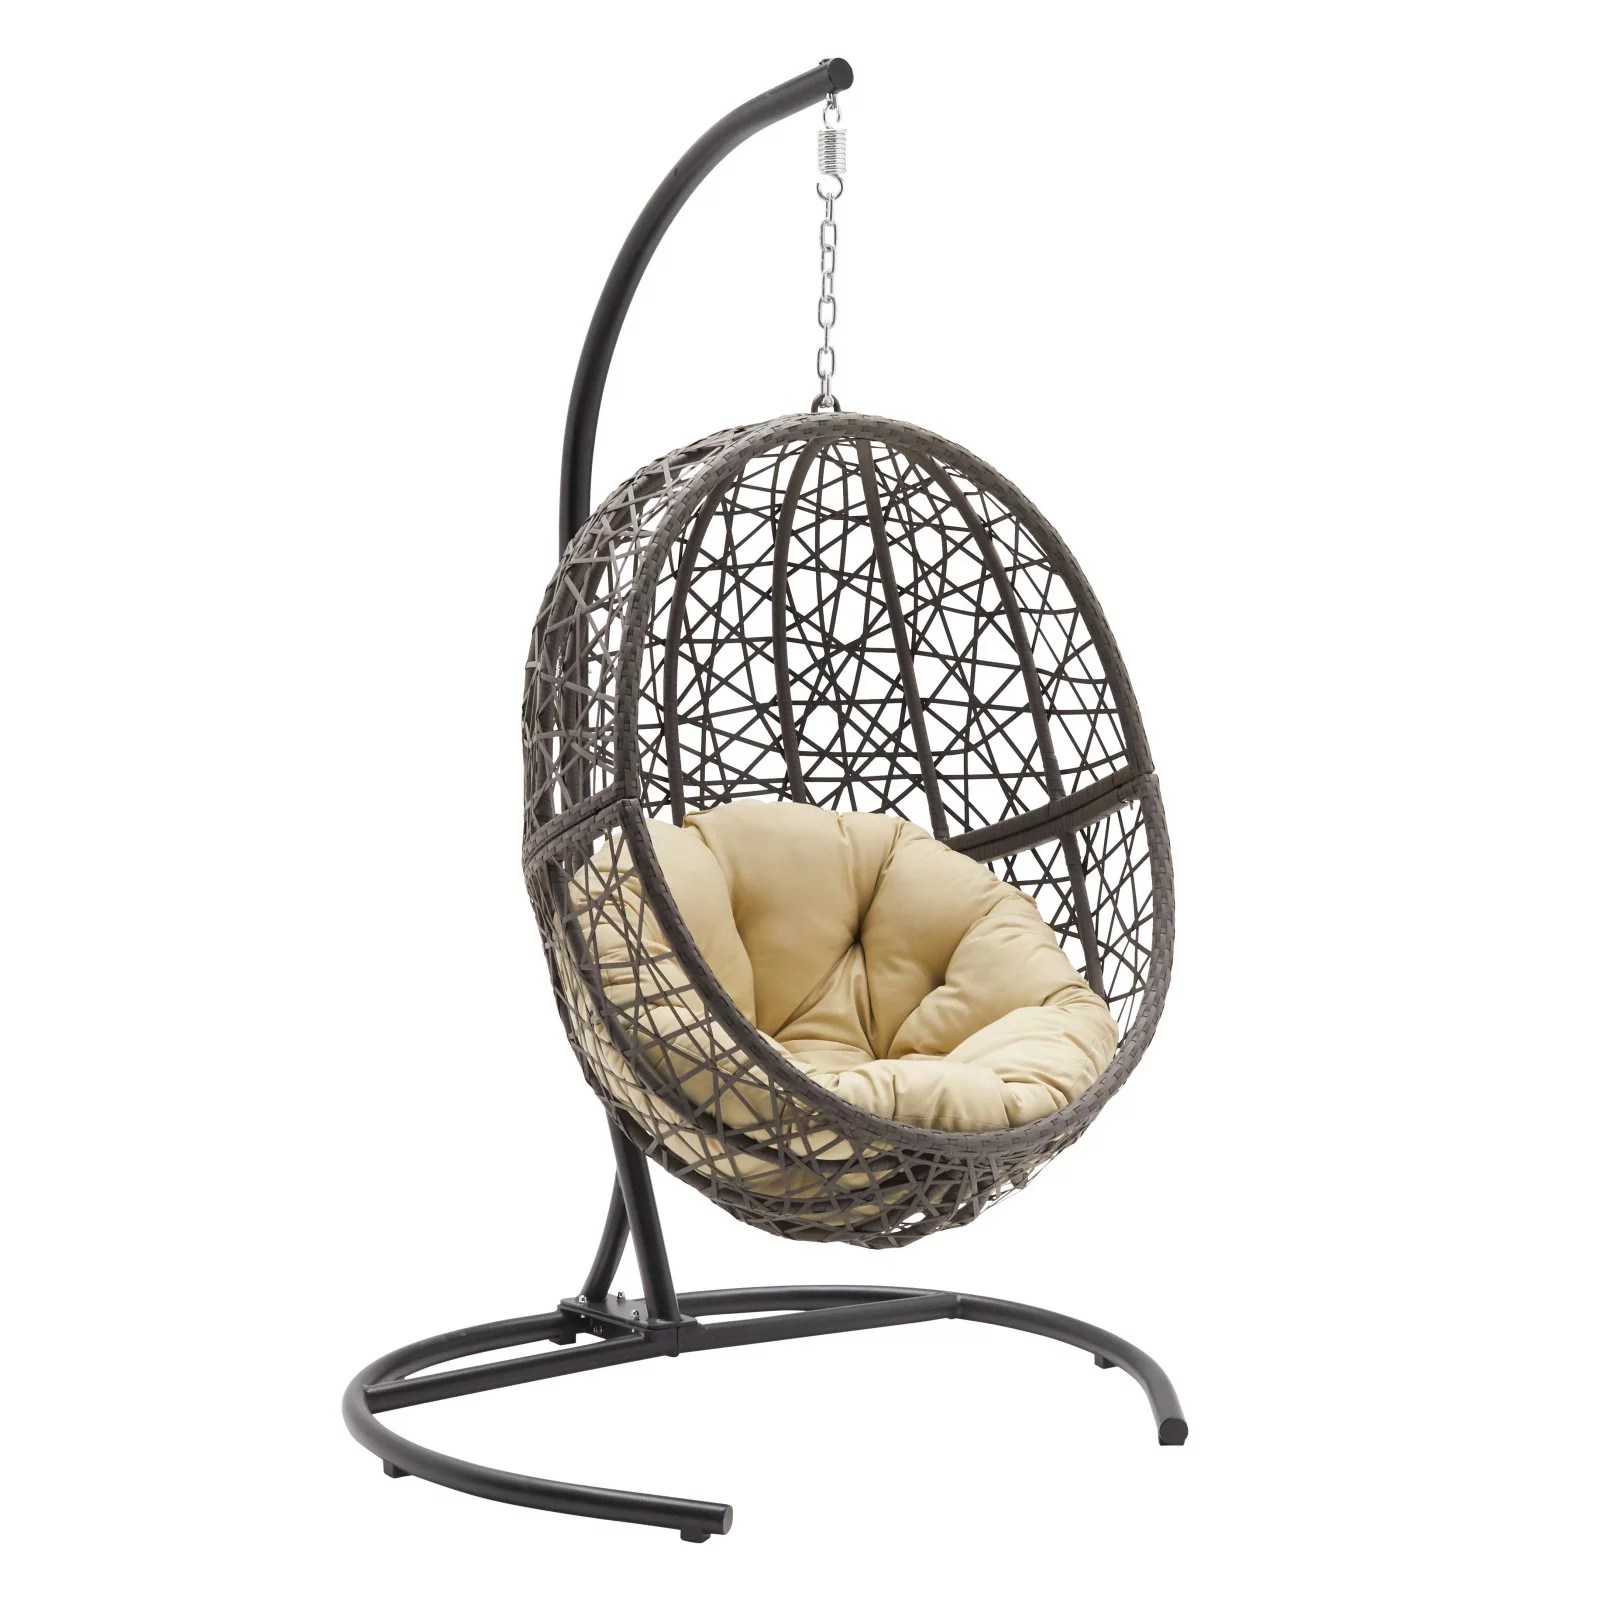 Belham Living Resin Wicker Hanging Egg Chair With Cushion And Stand Walmart Com Walmart Com